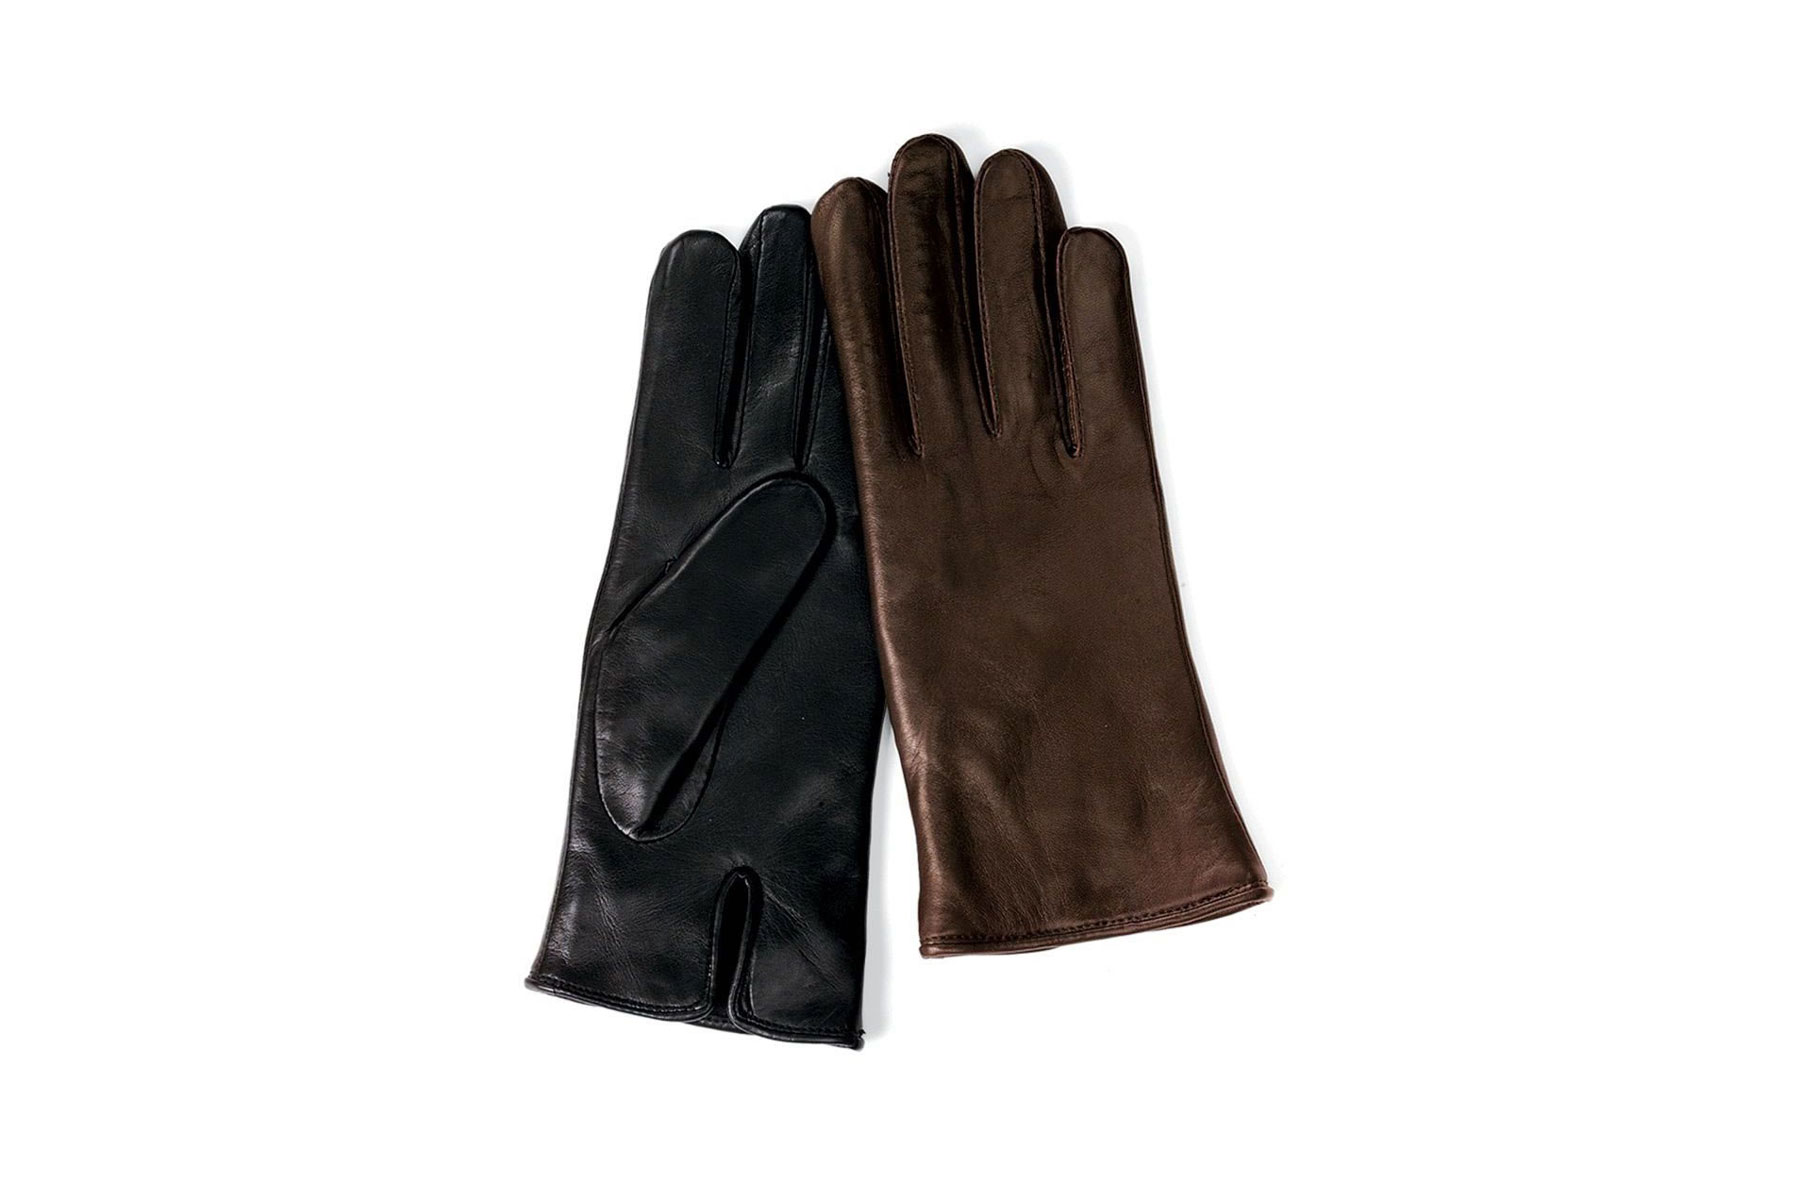 Heat-Storing Leather Gloves